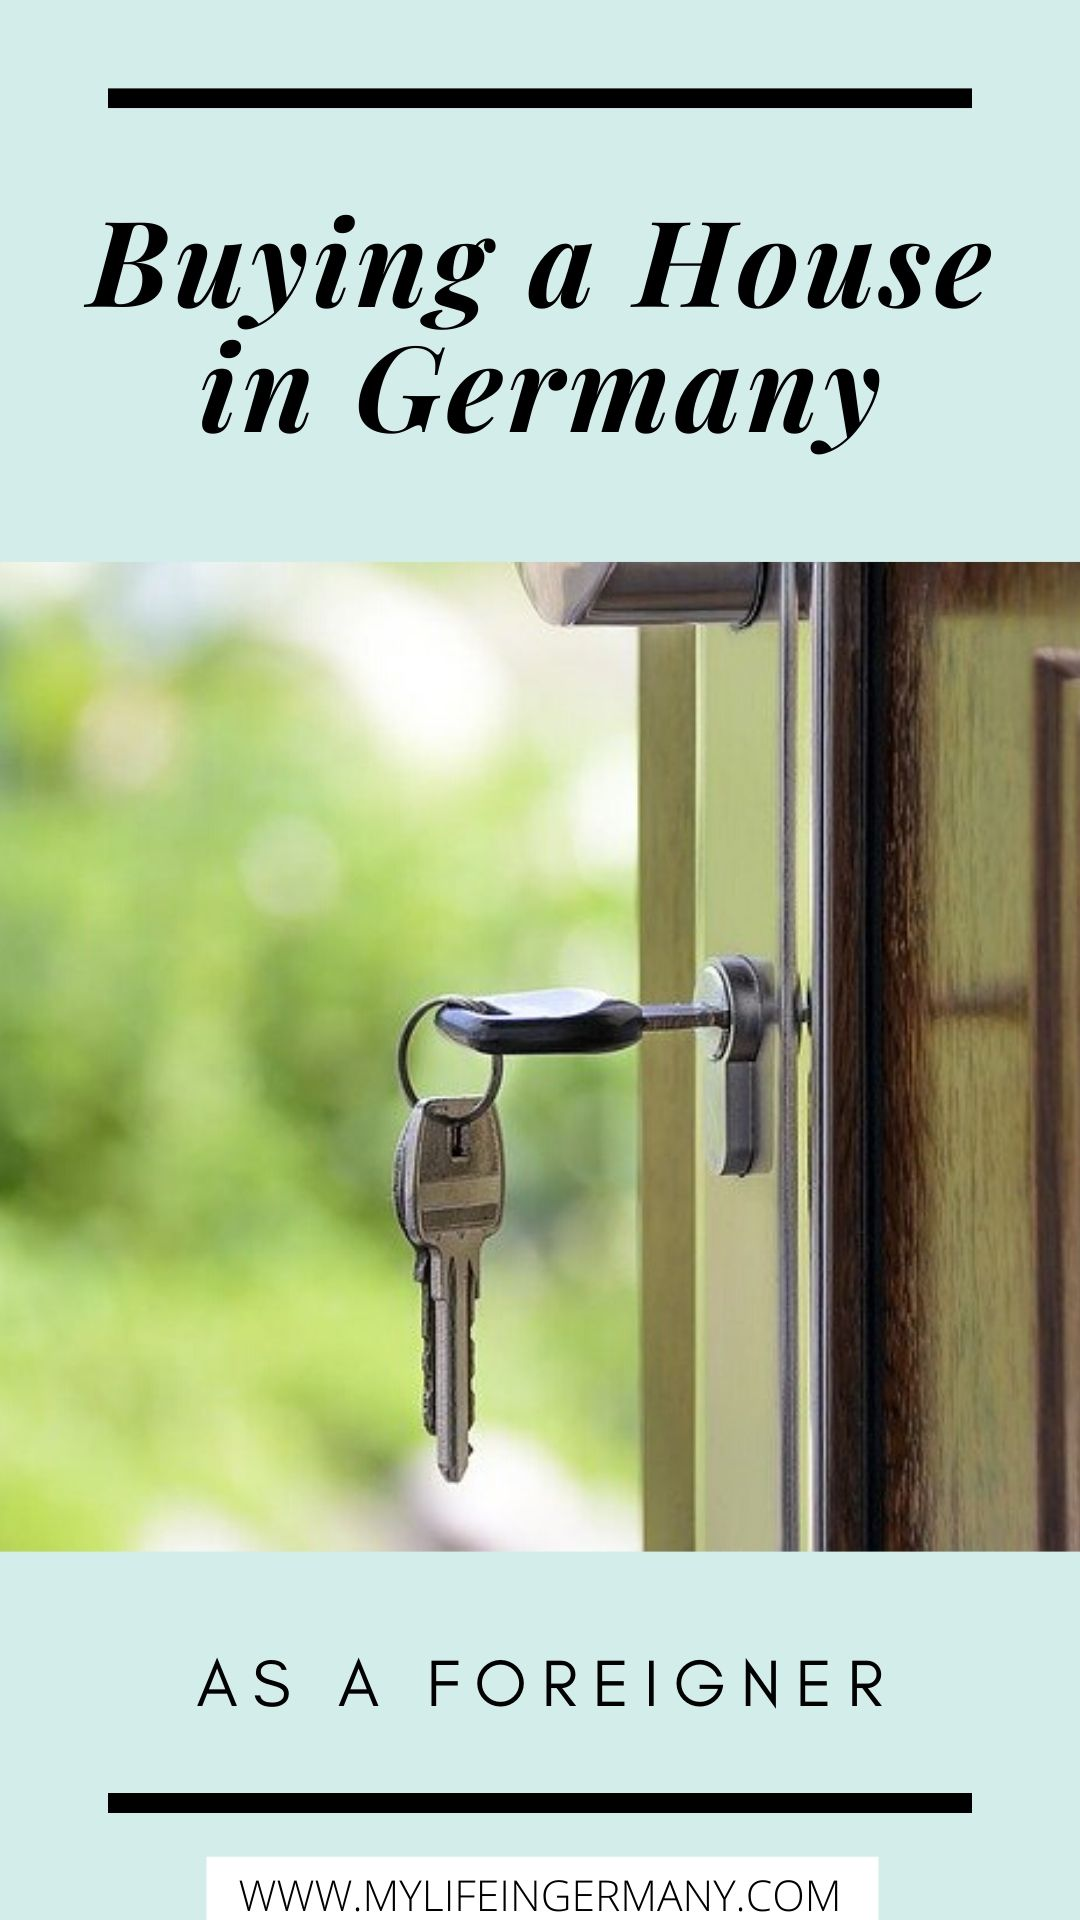 pinterest image edited_buying a house in Germany_as a foreigner_how to buy a house in Germany_my life in Germany_hkwomanabroad